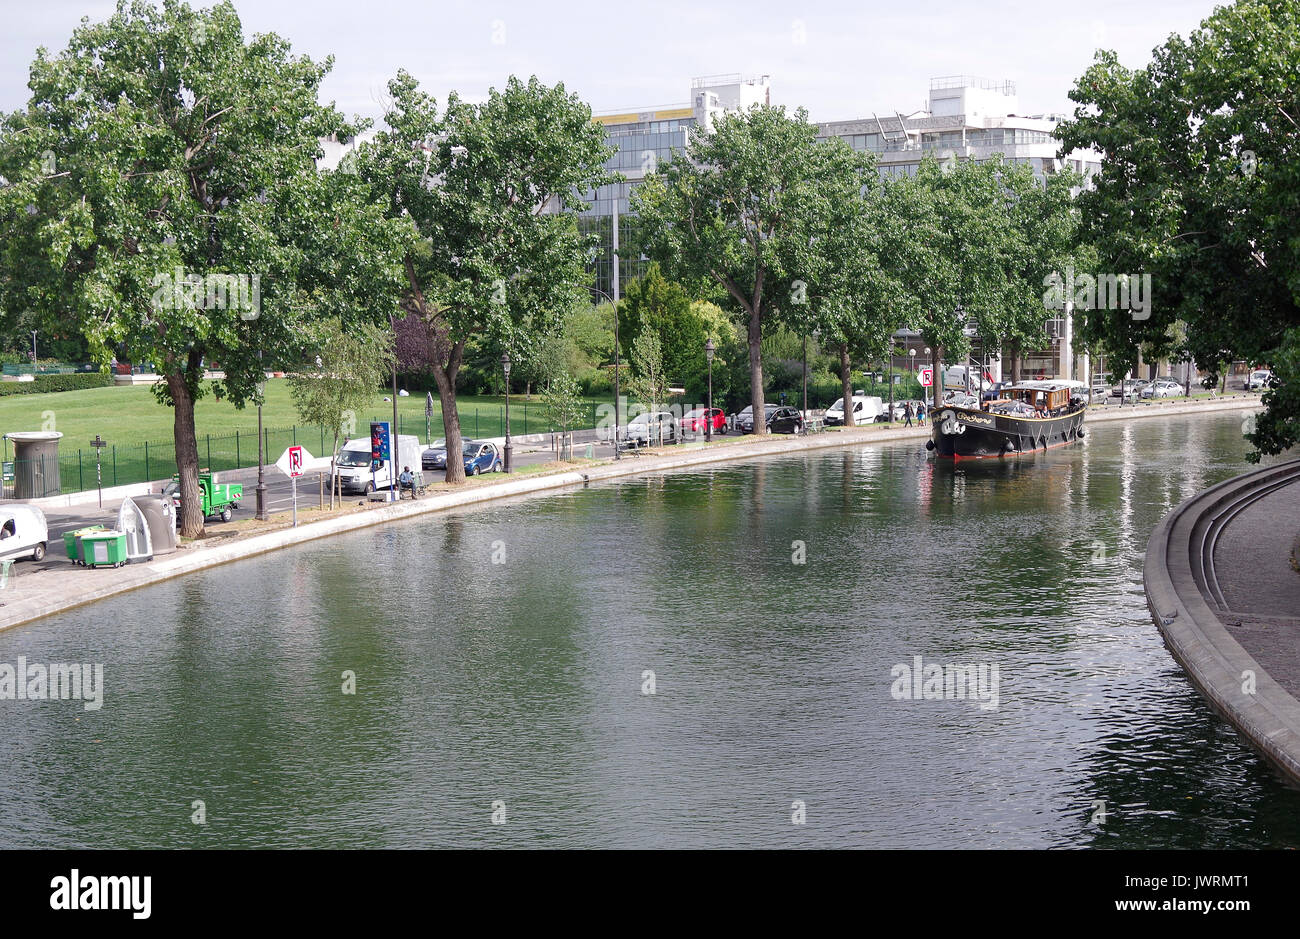 The MV Elizabeth, built for river and canal cruising, heading slowly south on the canal St Martin, Paris France - Stock Image